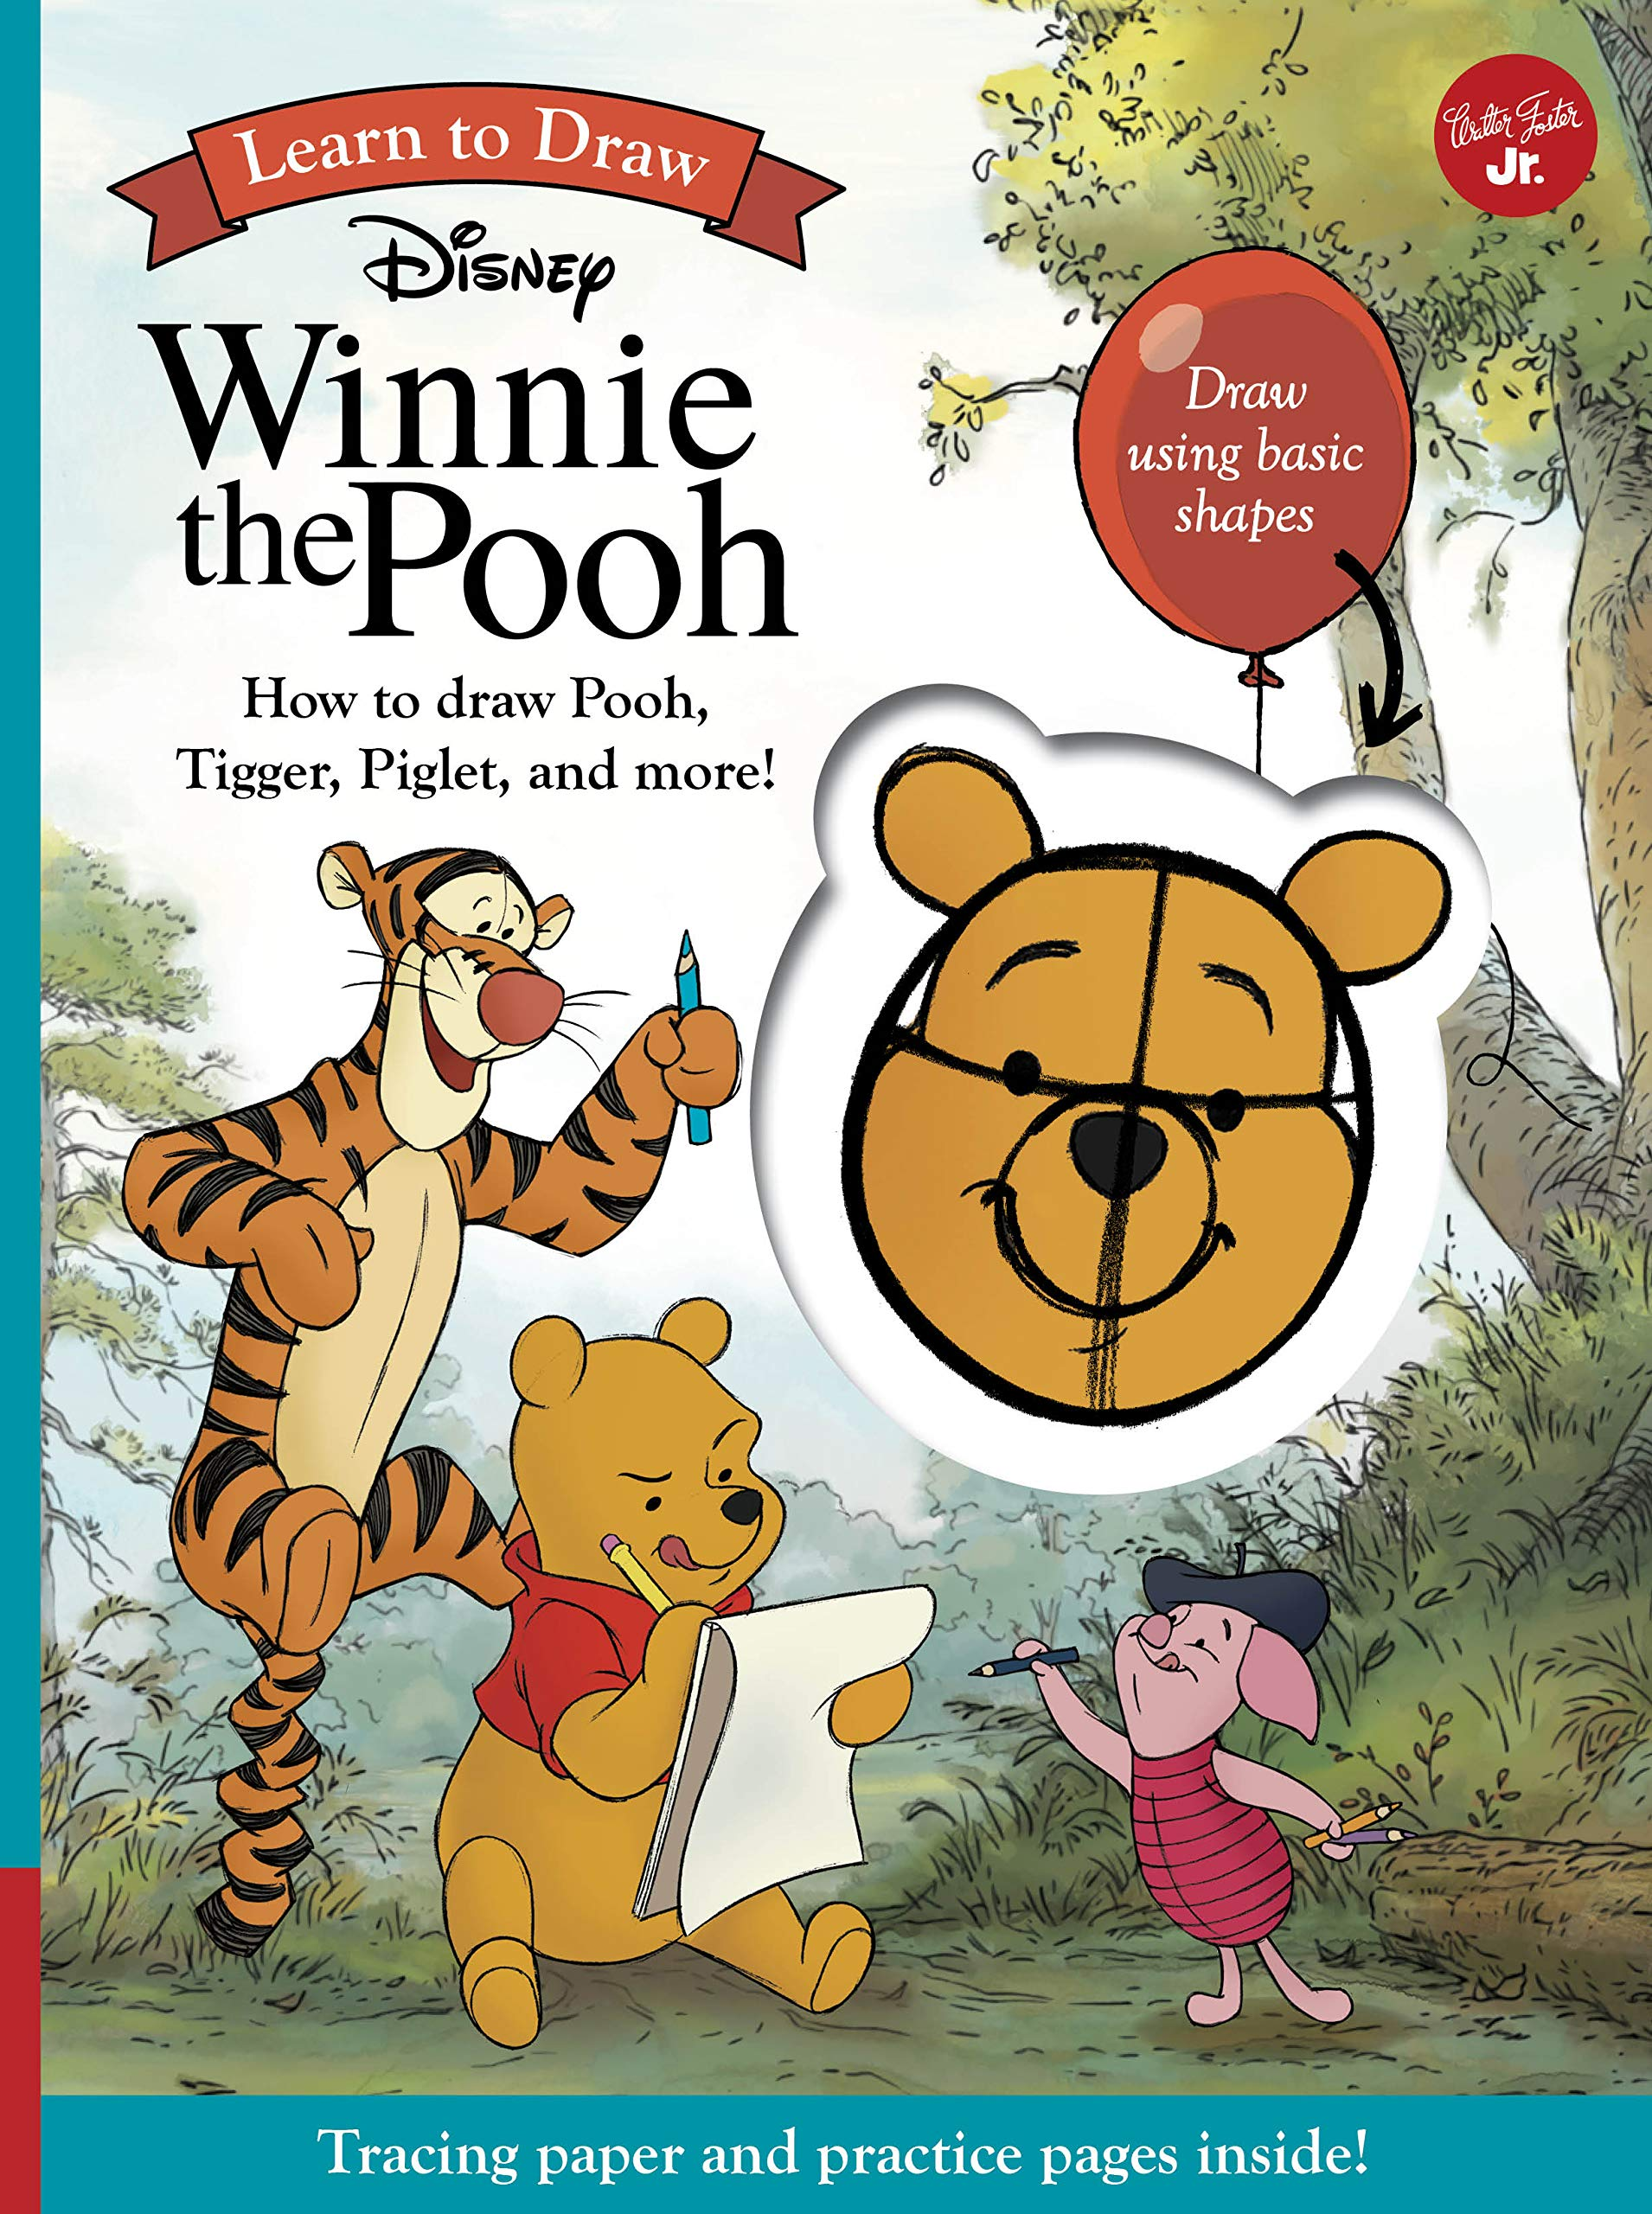 Learn To Draw Disney Winnie The Pooh How To Draw Pooh Tigger